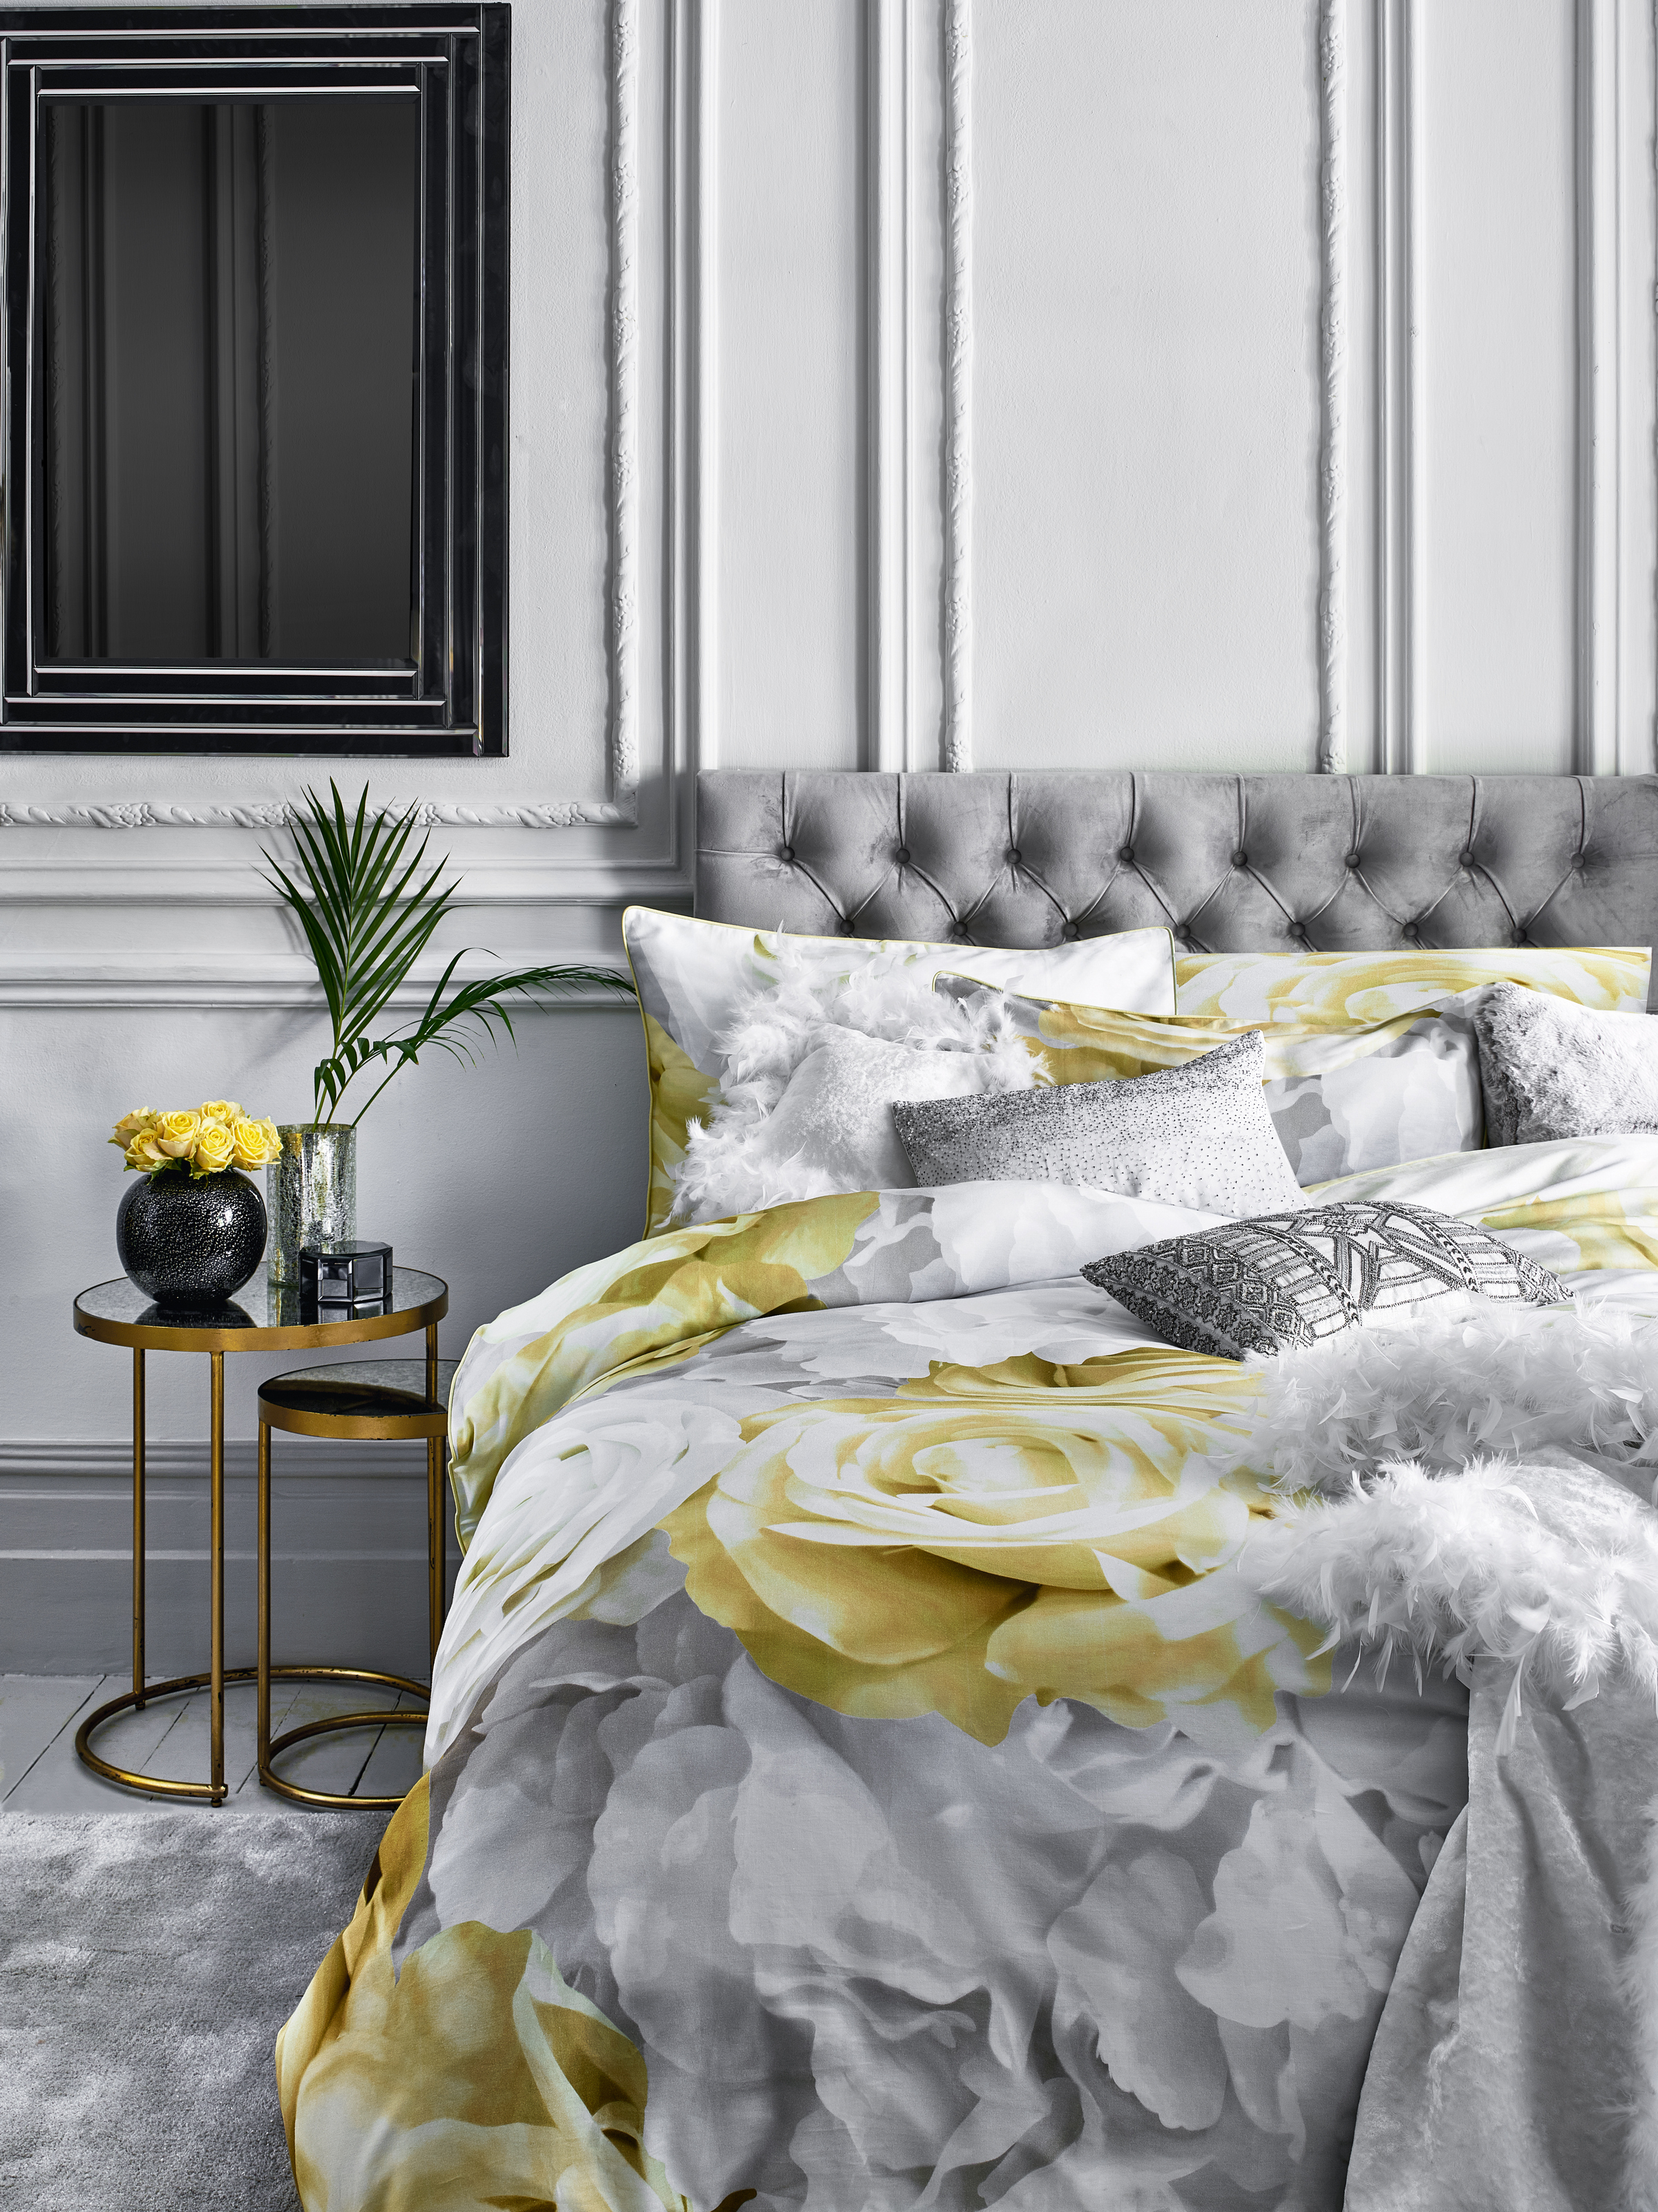 Decor desires 3 gorgeous new interiors trends to try in 2018 star by julien macdonald rose bed linen cushions runner vase jewellery box sleepeezee light grey plush velvet chester headboard glamour nest of two gumiabroncs Image collections